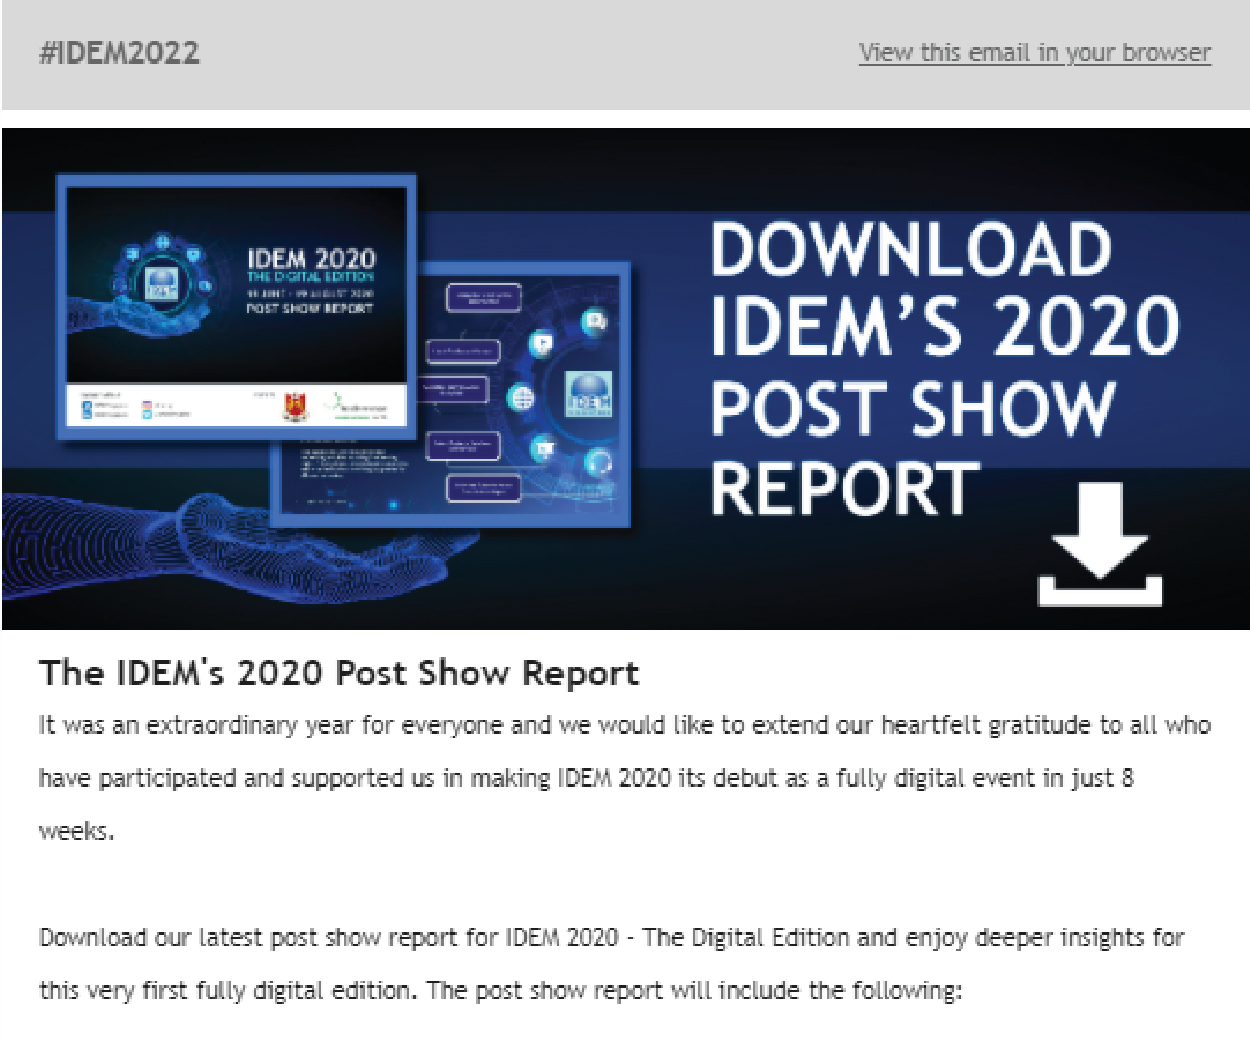 IDEM 2020 Newsletter PSR 01 - News